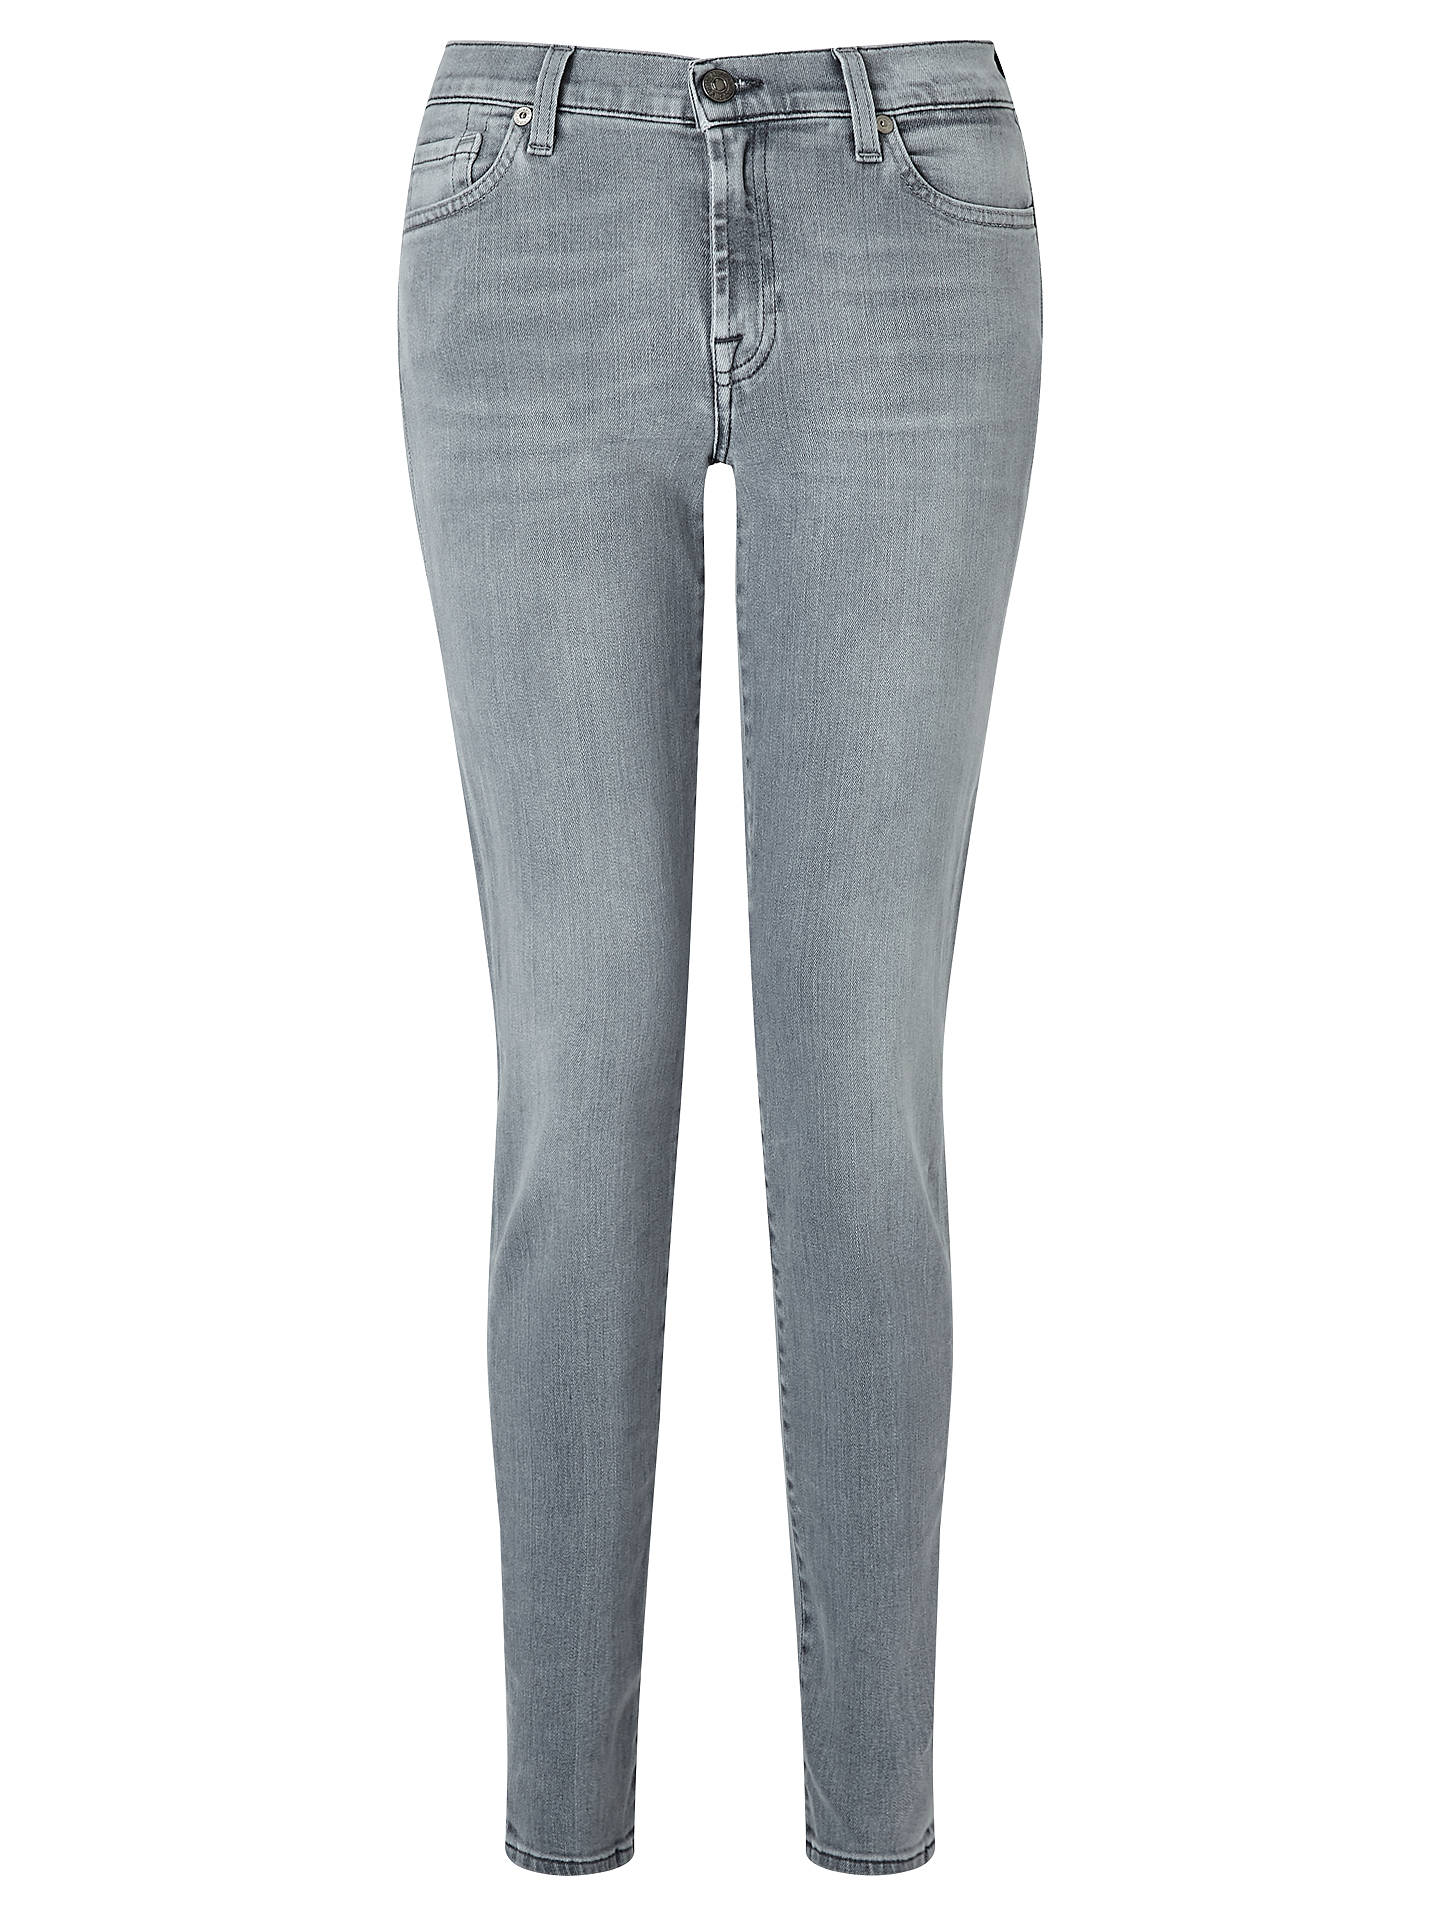 Buy 7 For All Mankind Mid Rise Skinny Slim Illusion Jeans, Grey, 26 Online at johnlewis.com